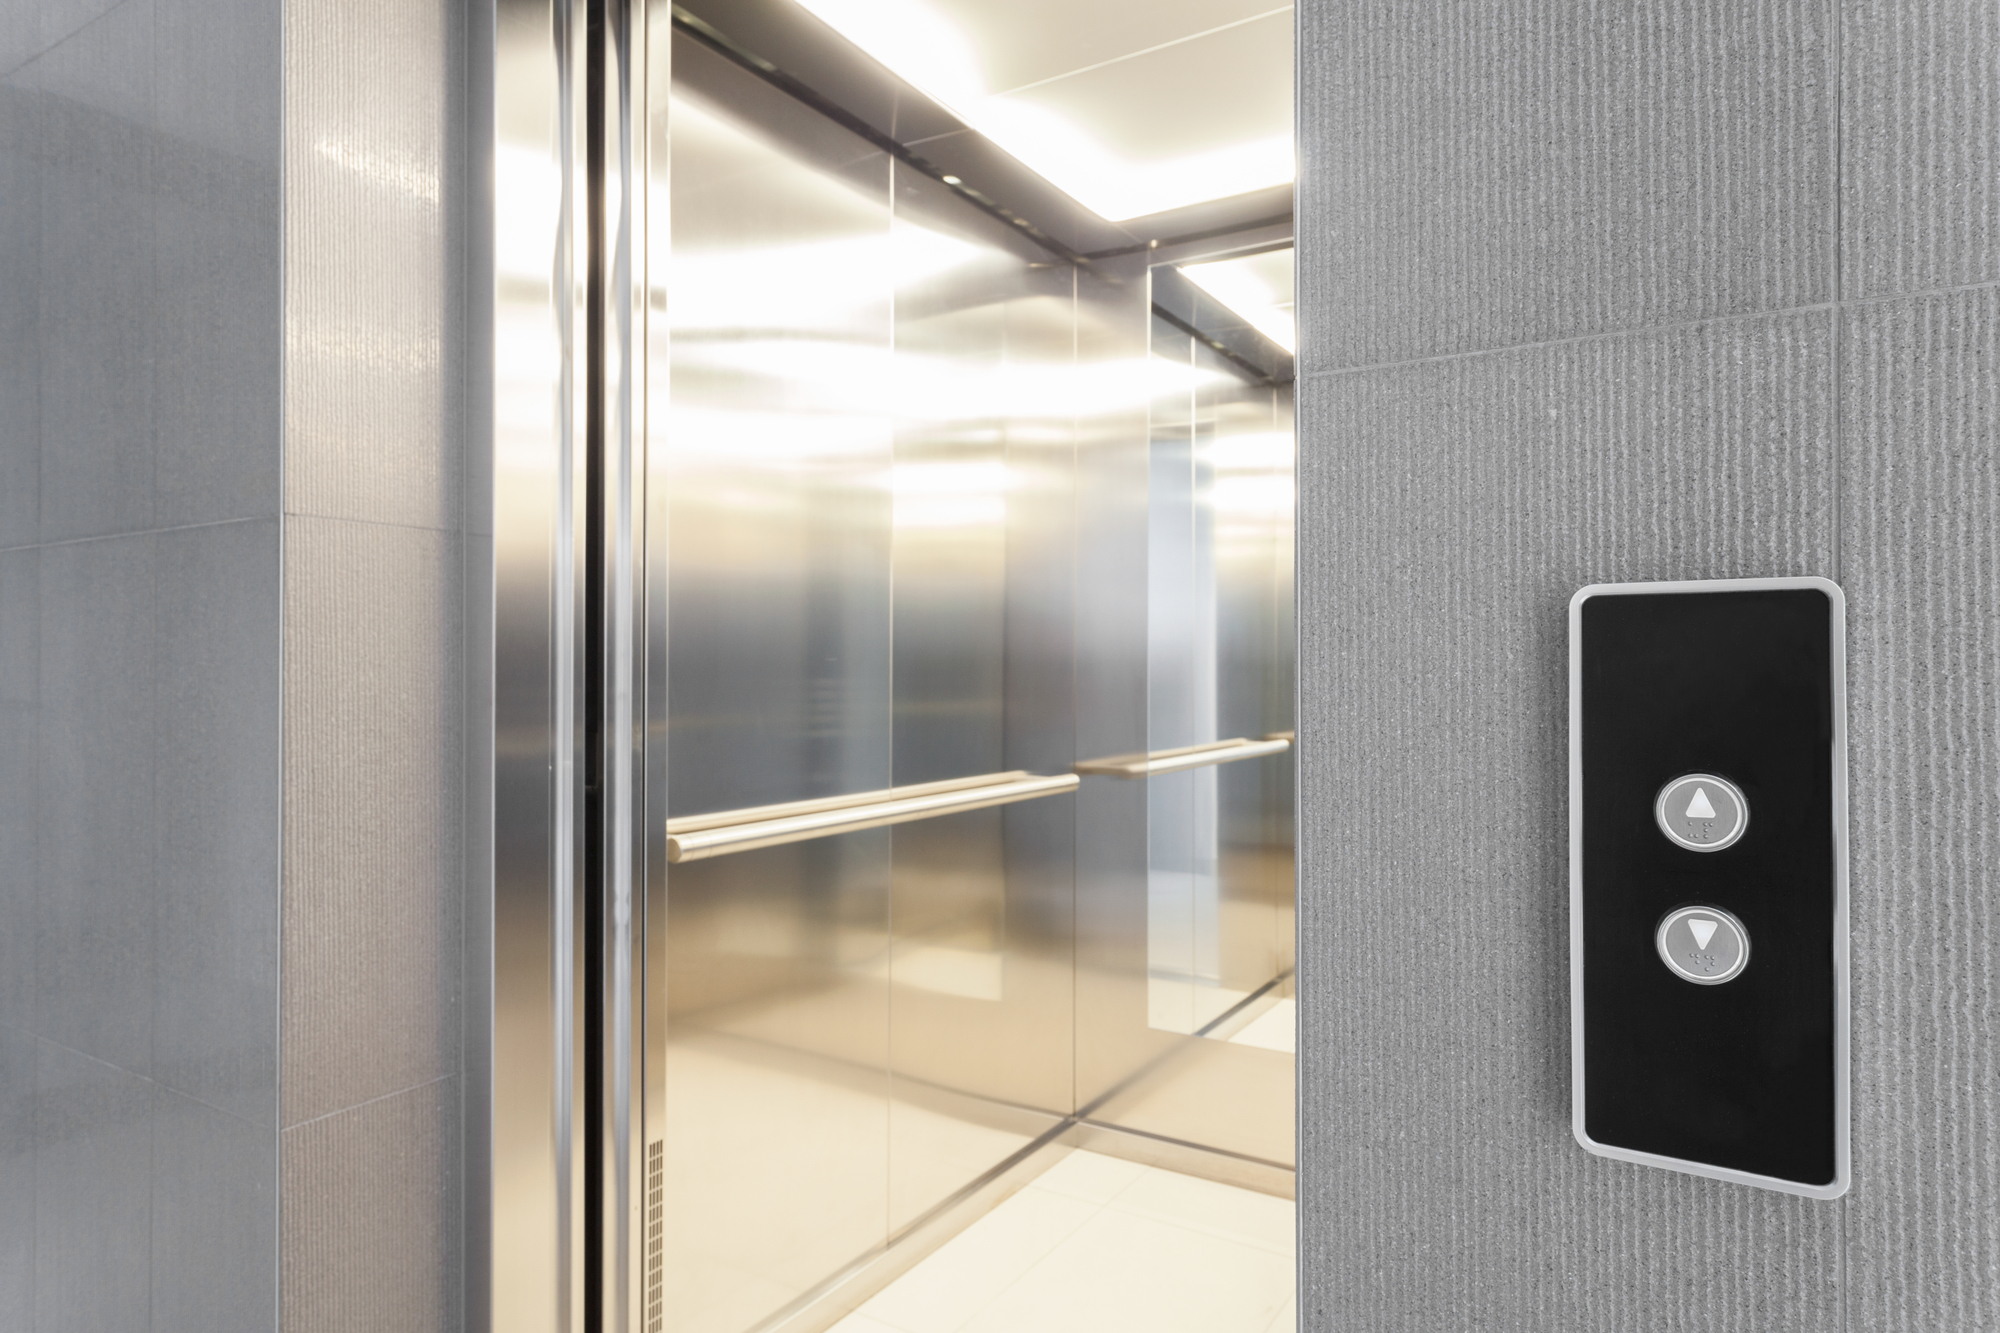 How to Decide When to Modernize Elevator